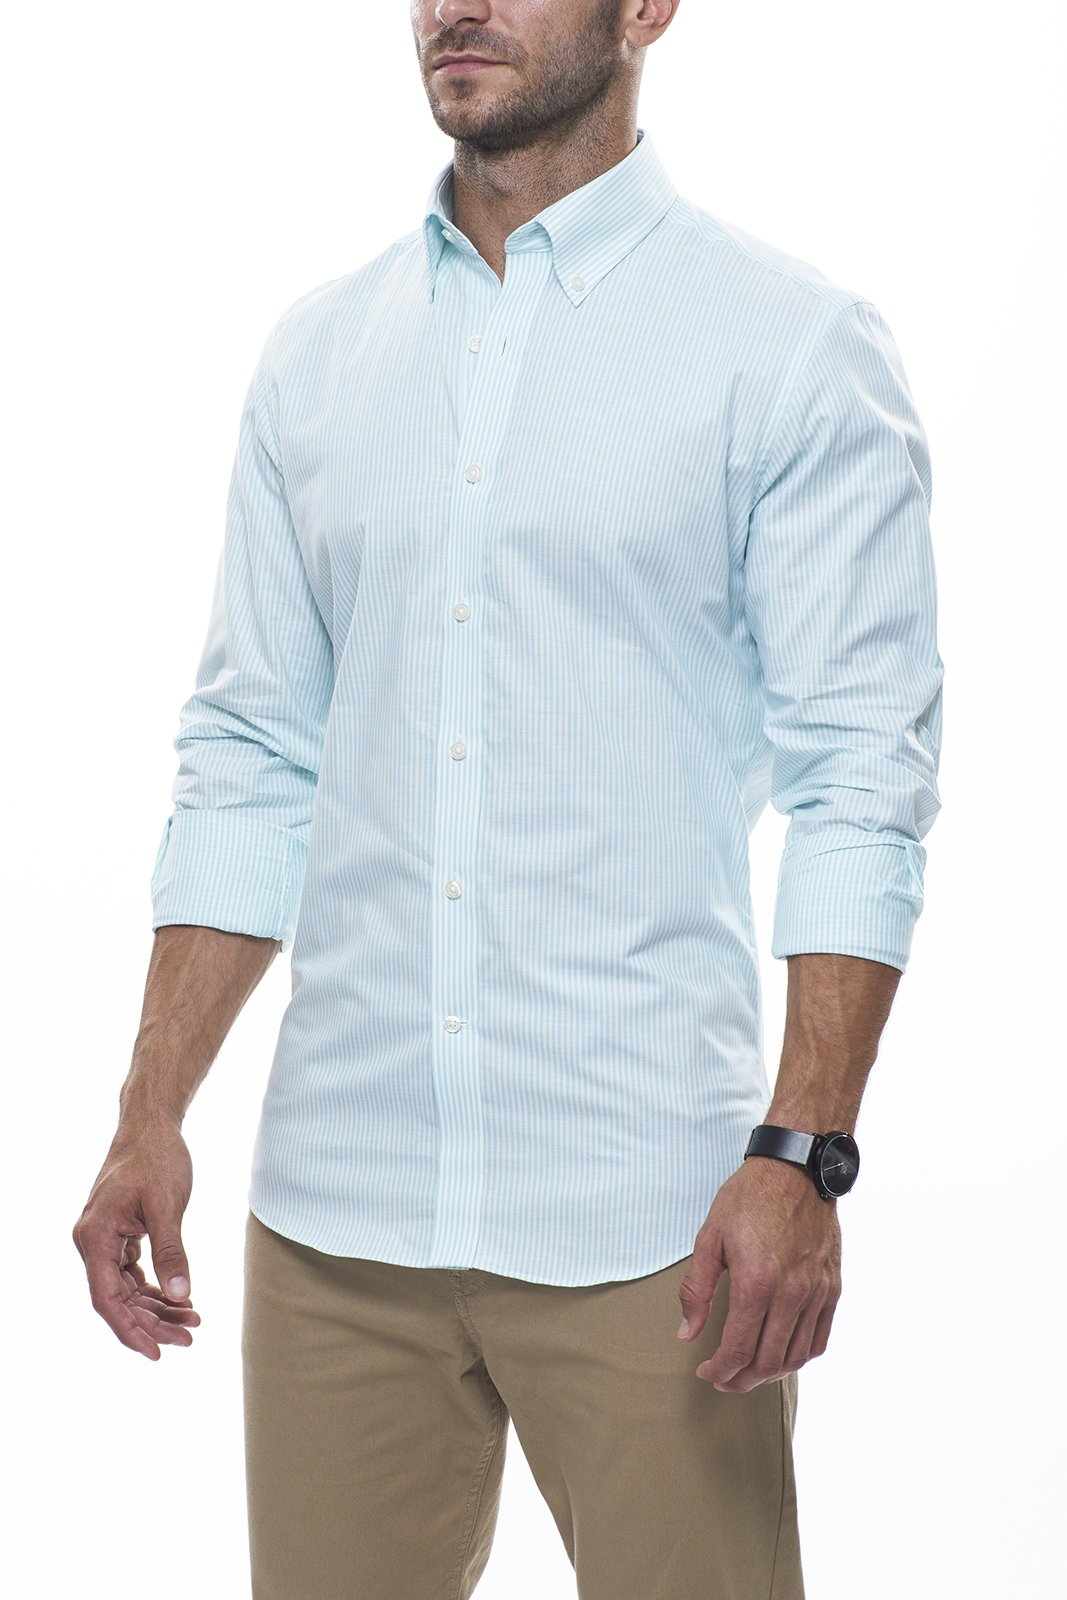 Seafoam Striped Oxford: Modified-Spread Collar, Barrel Cuff